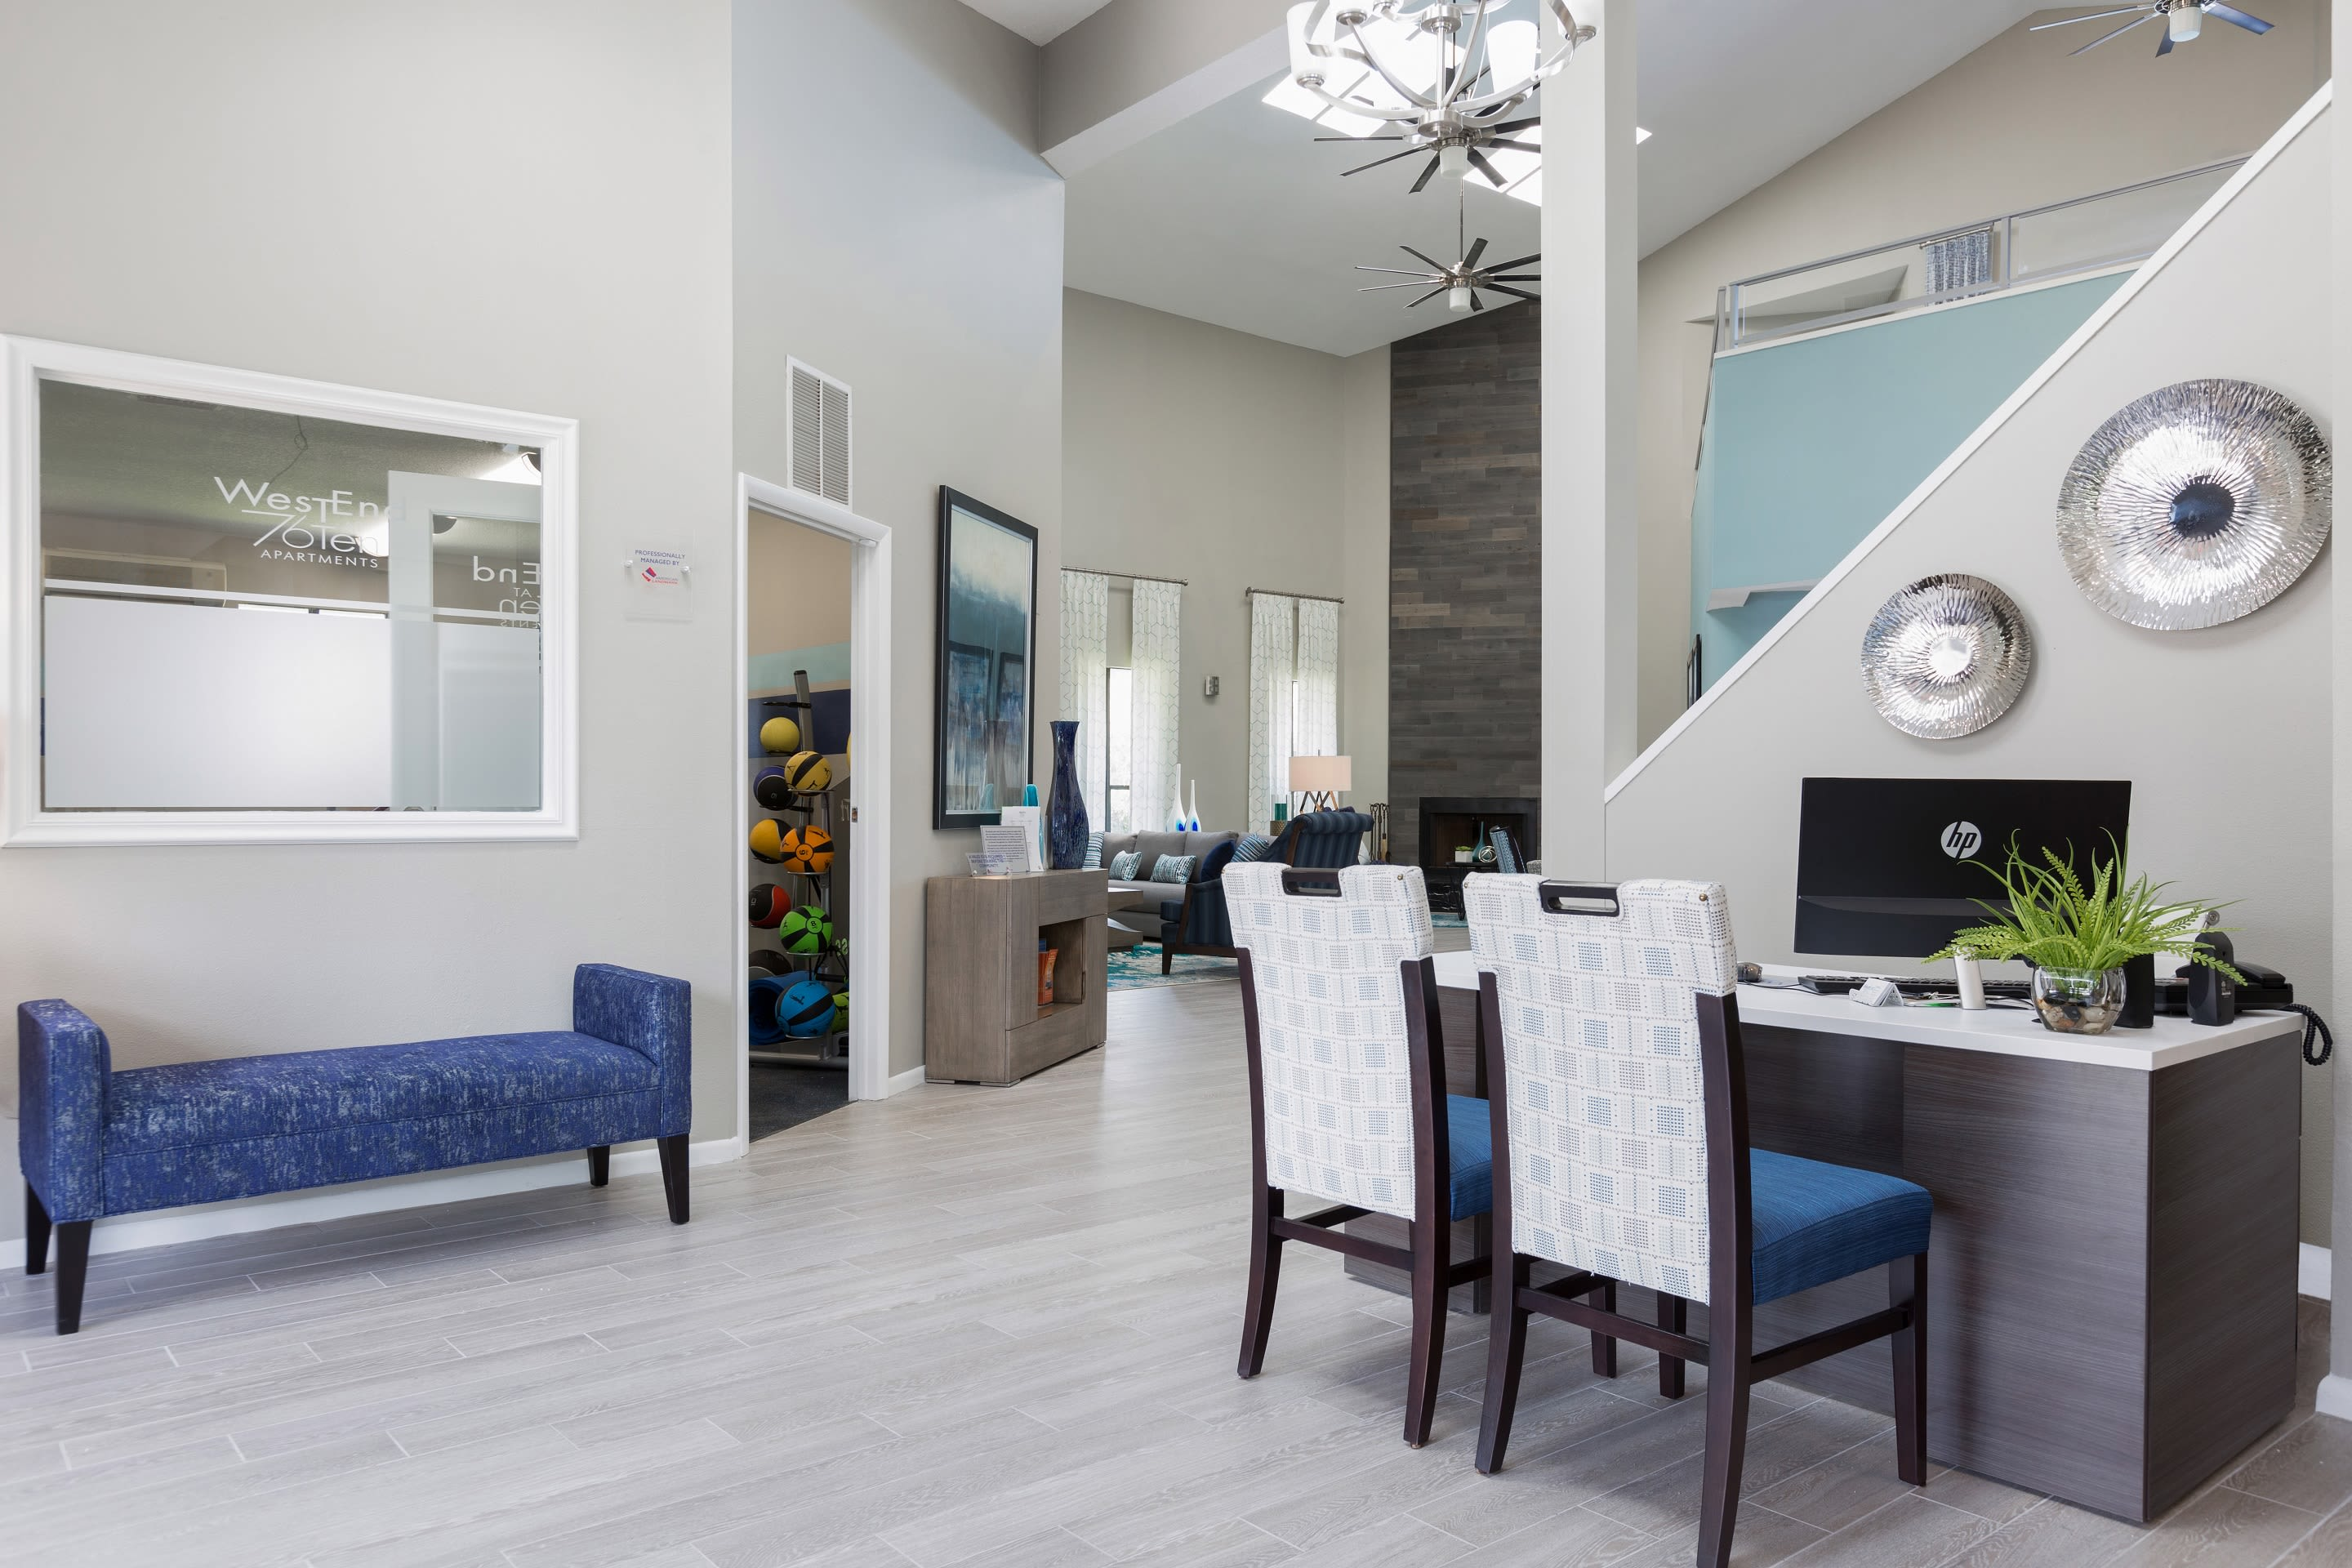 WestEnd At 76Ten model room with beautiful wooden flooring in Tampa, Florida